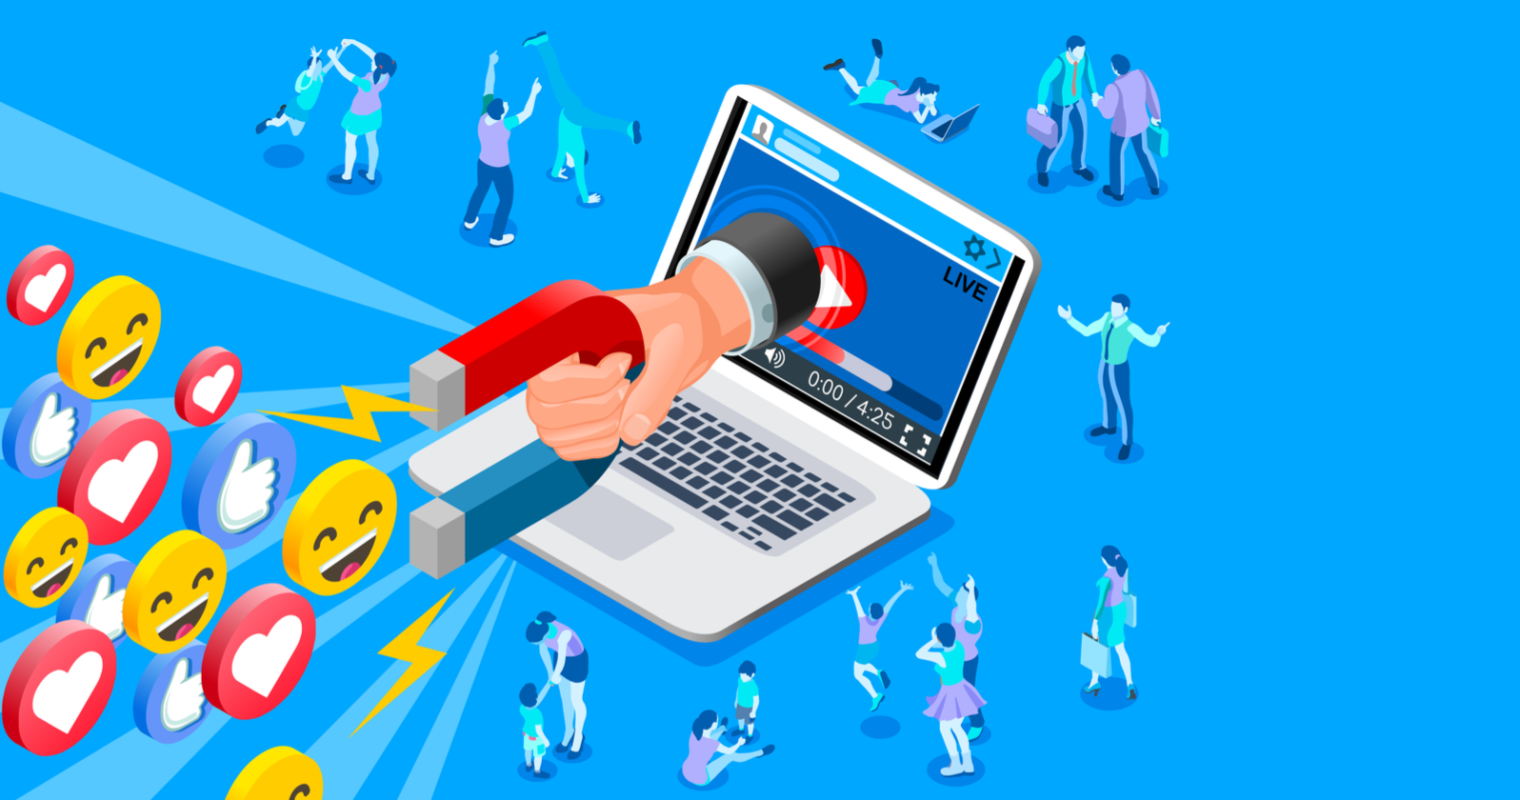 Social networking tools for business have become excellent options